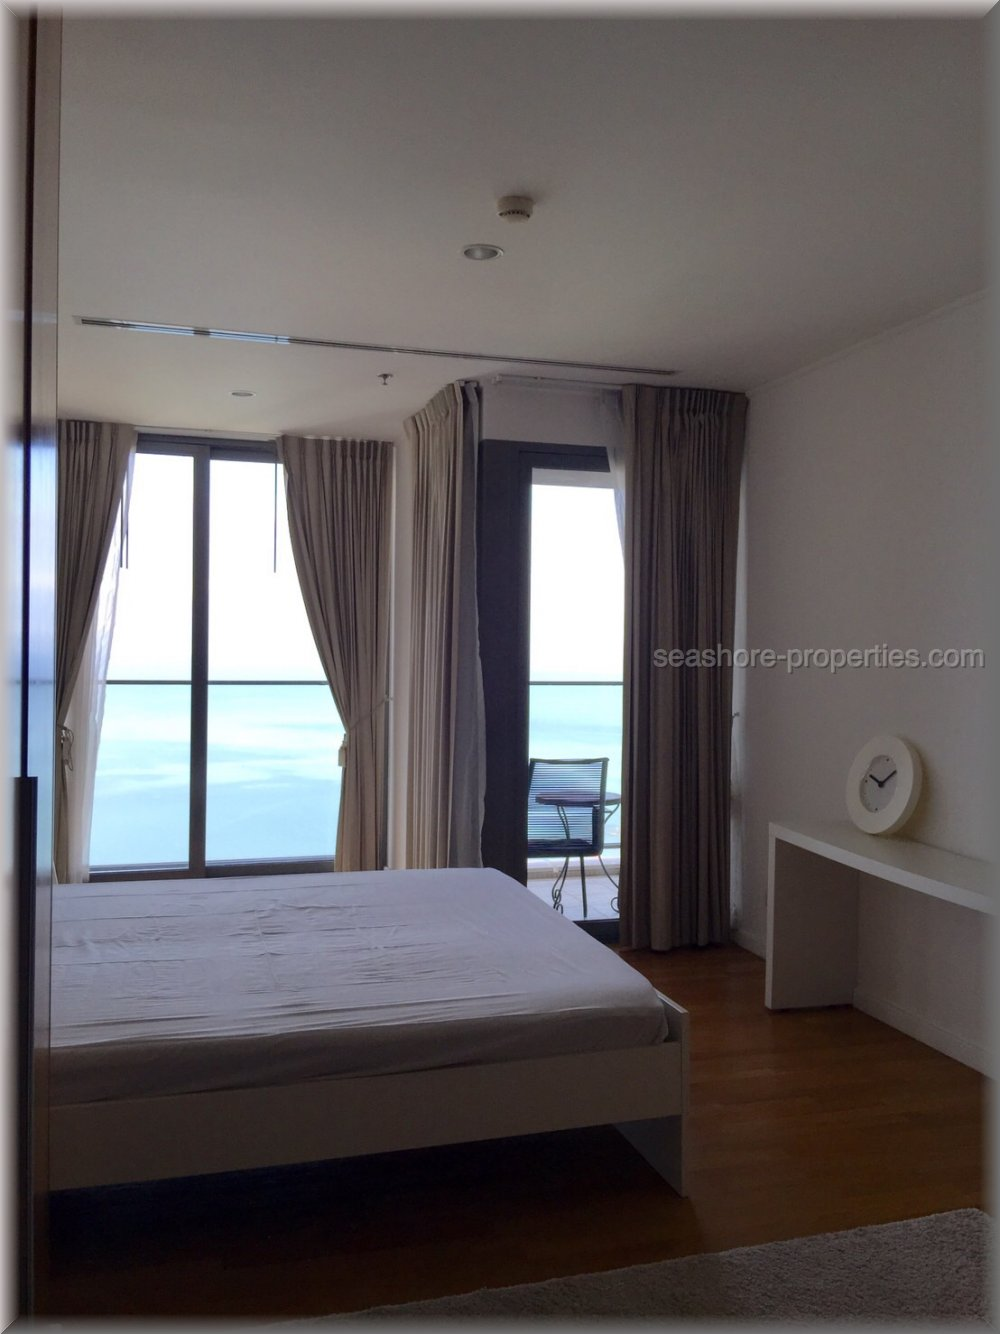 pic-9-Seashore Properties (Thailand) Co. Ltd. Northpoint Condominium   for sale in Wong Amat Pattaya